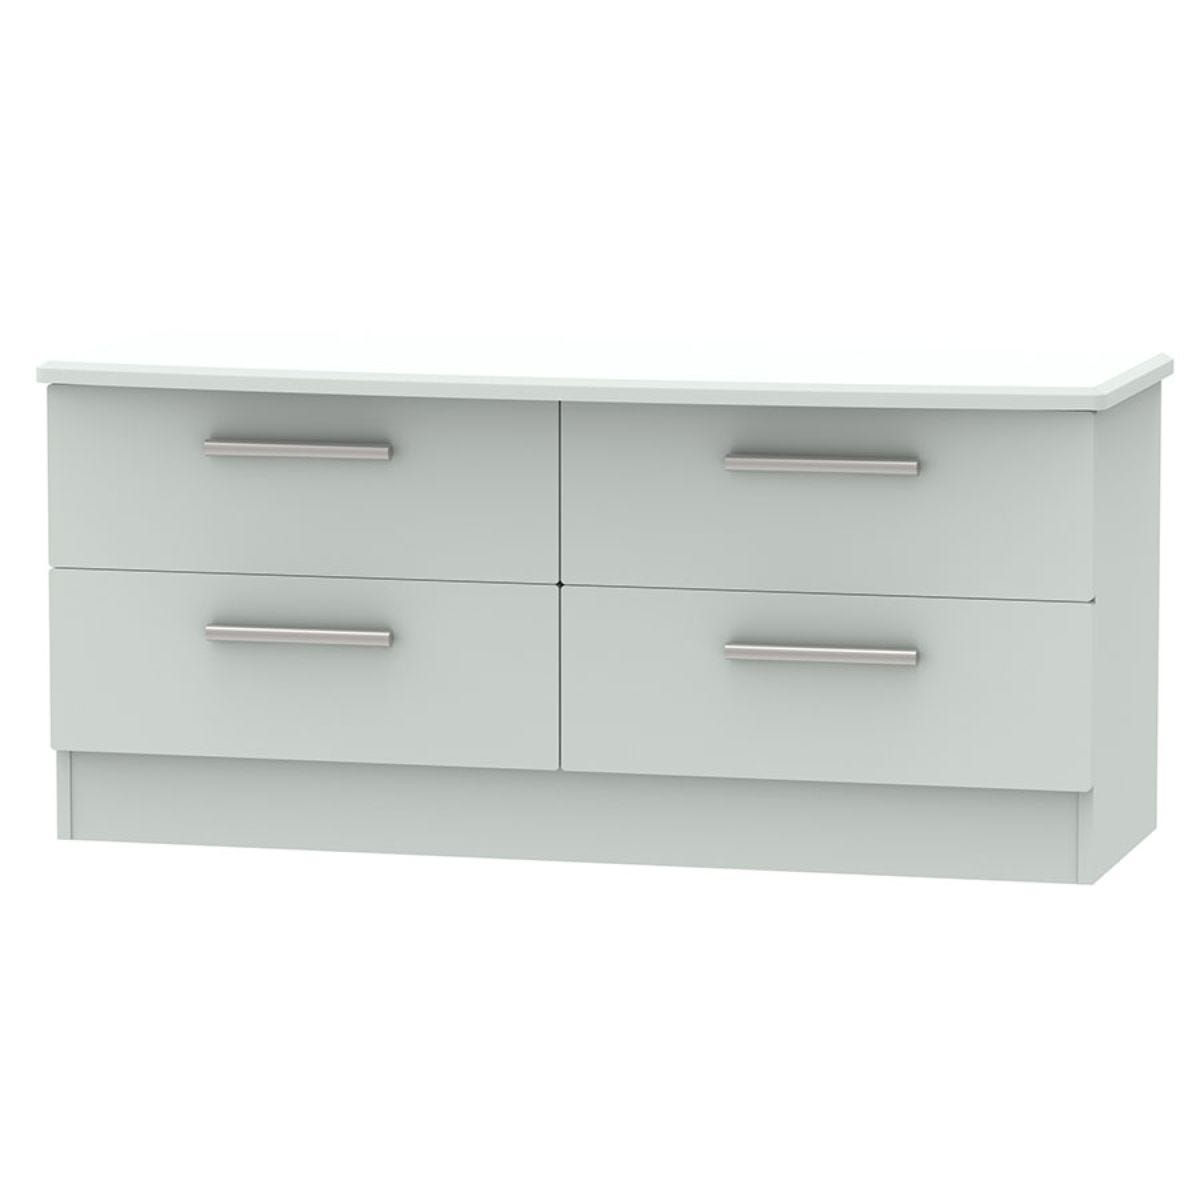 Fourisse 4-Drawer Midi Chest of Drawers - Grey